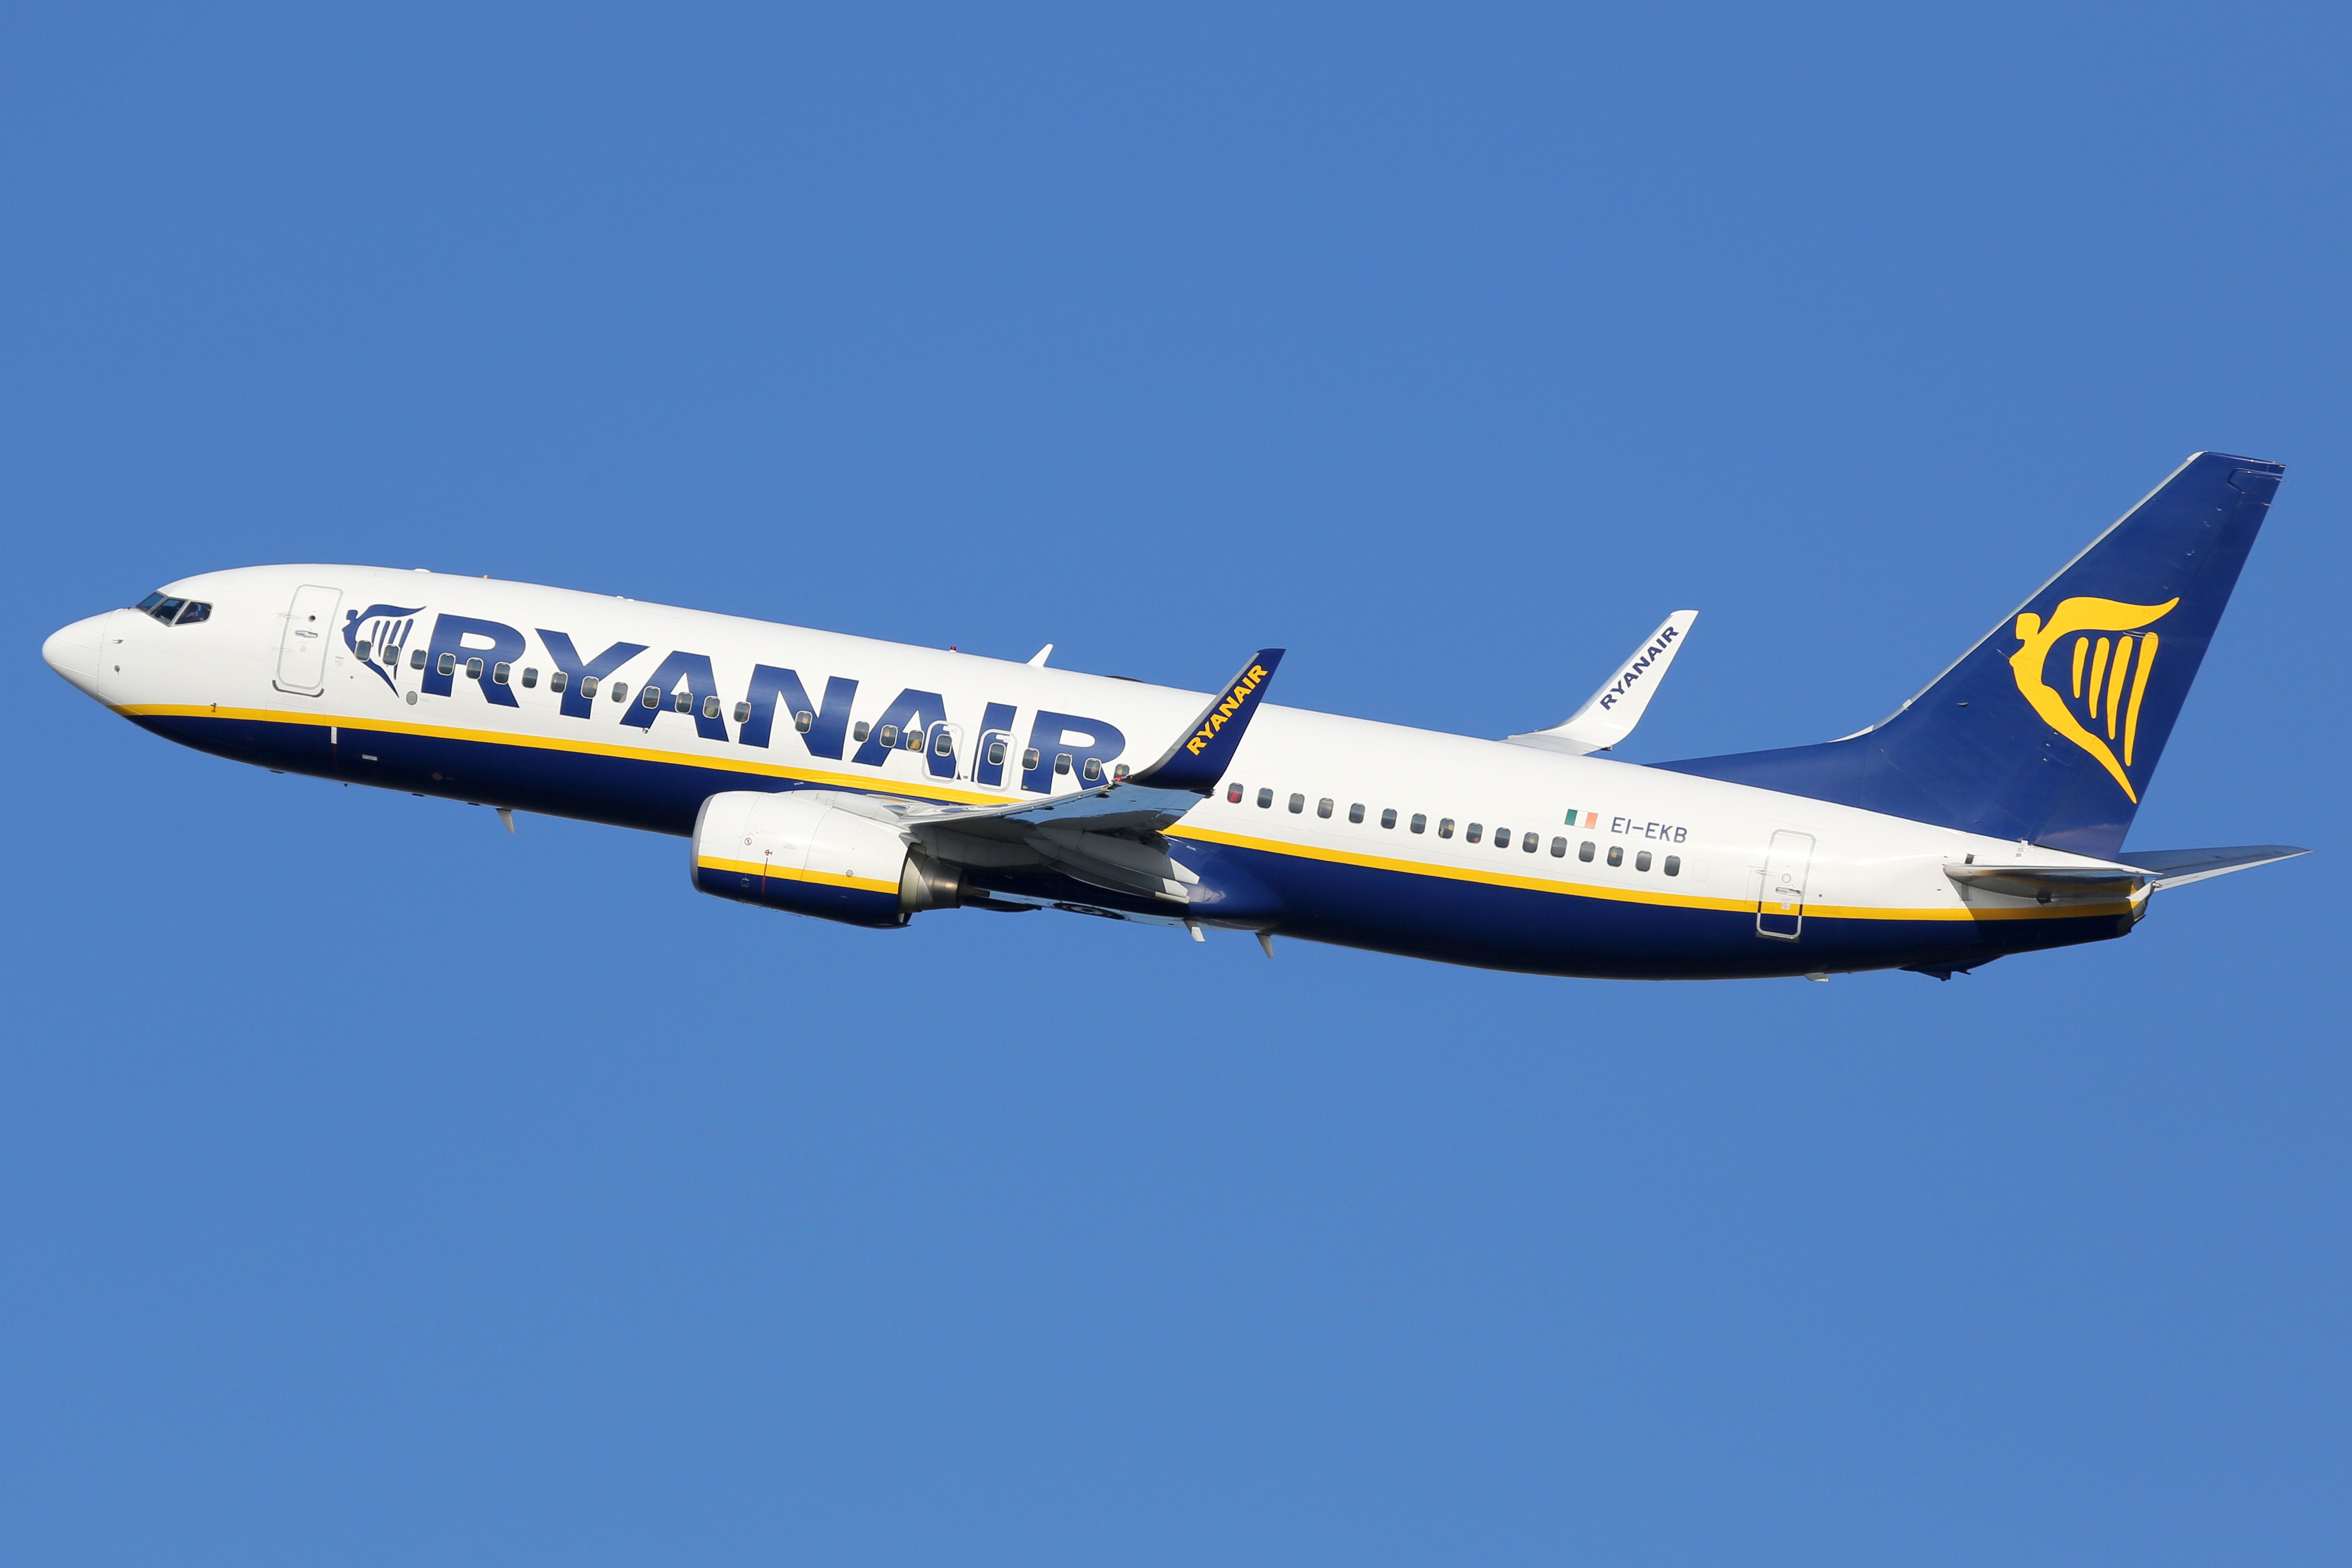 Ryanair cancels 2000 flights, costing airline $30M